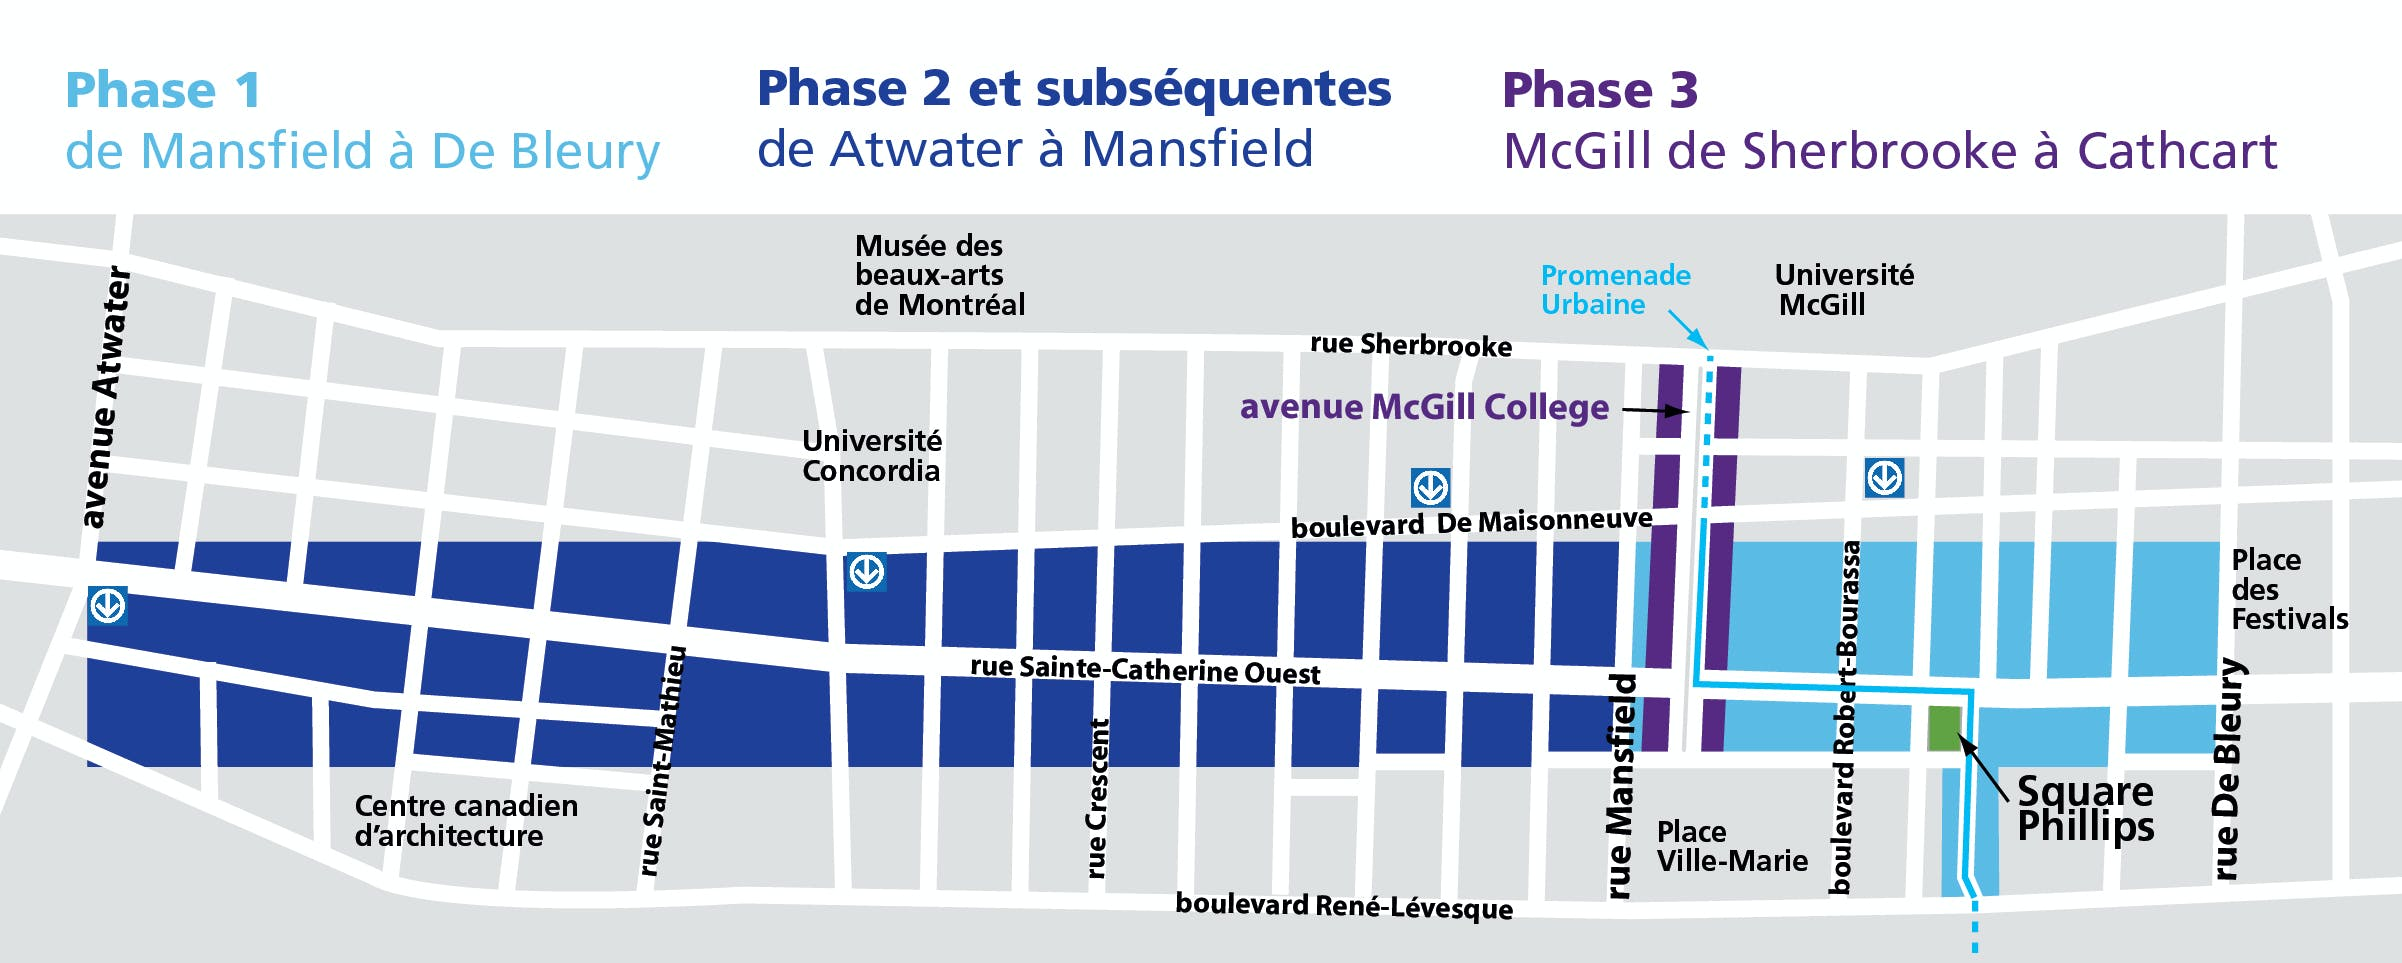 Phases du projet Sainte-Catherine Ouest